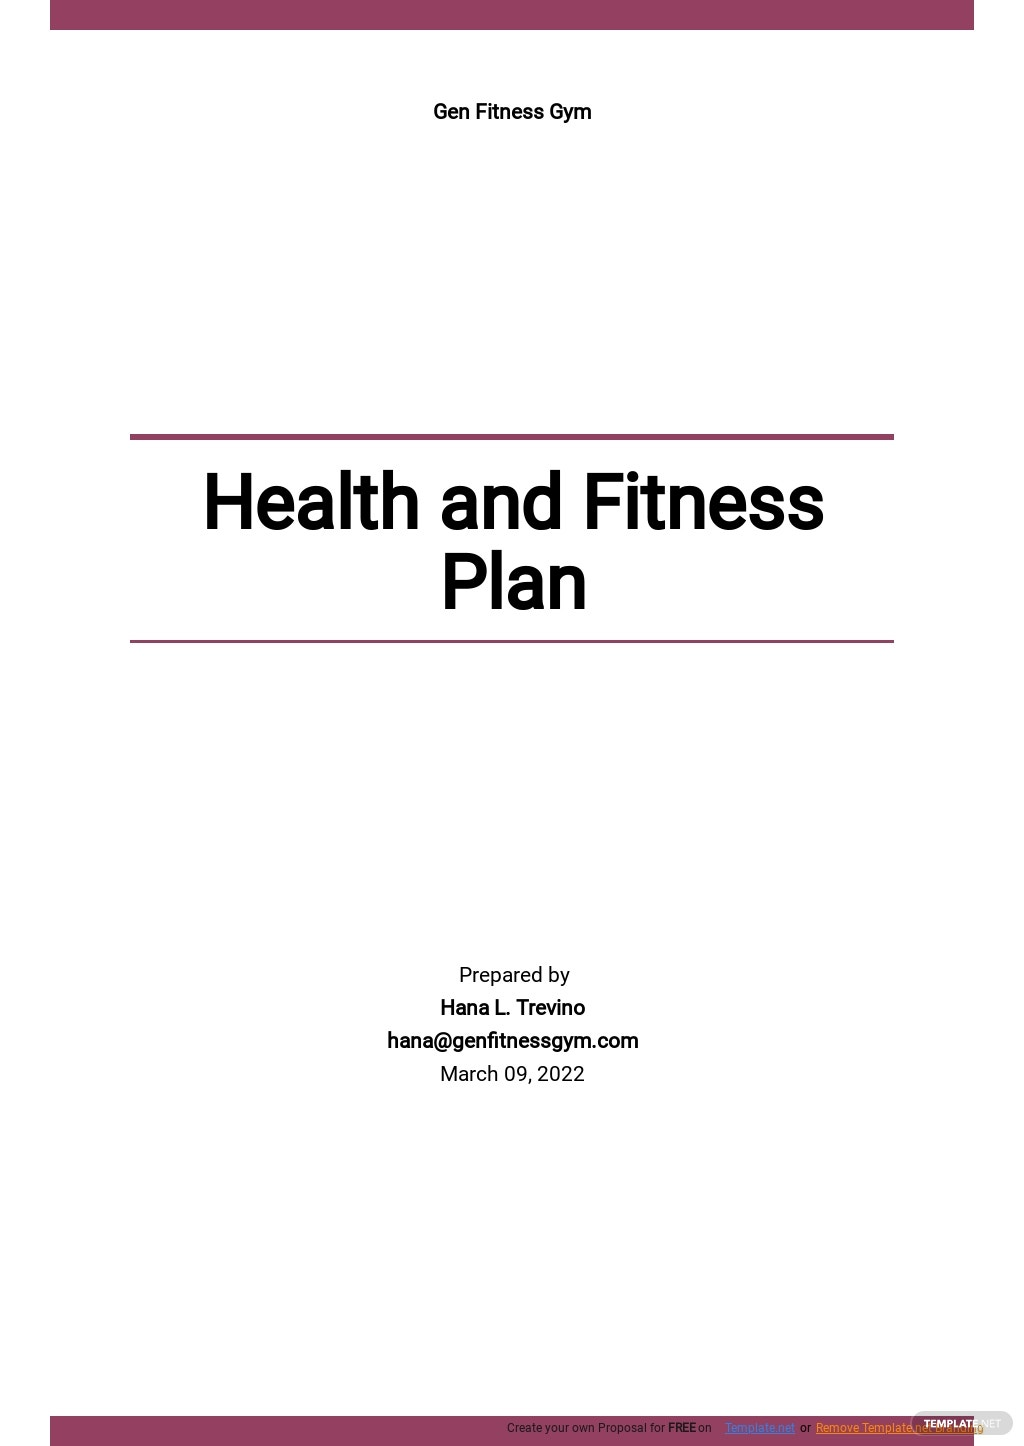 Health and Fitness Plan Template.jpe